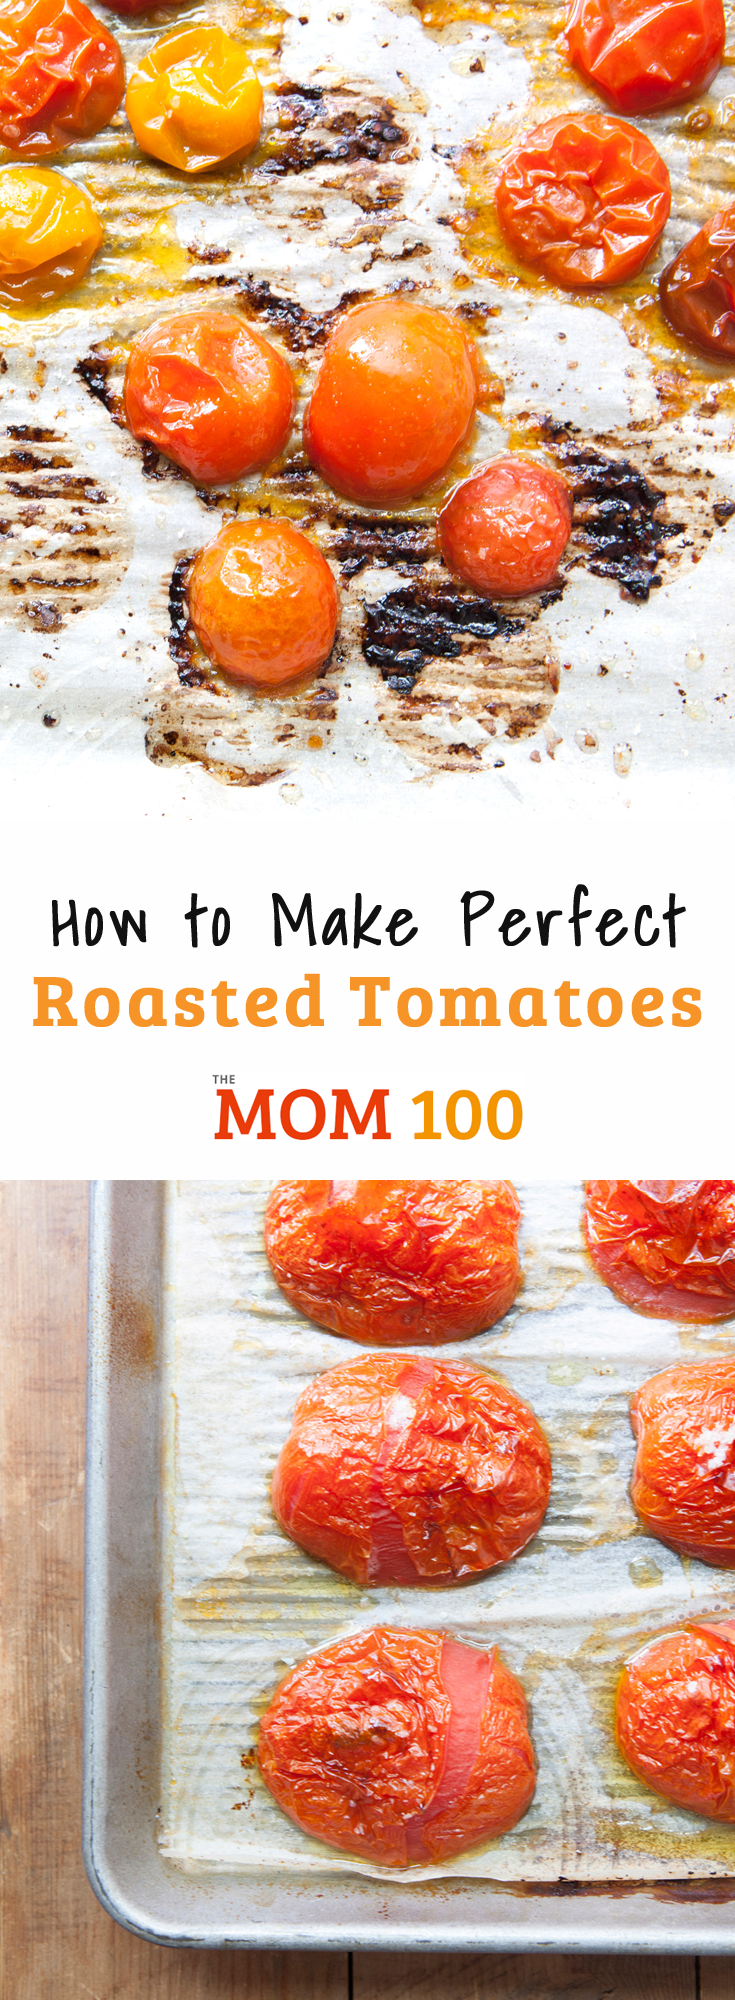 How to Make Perfect Roasted Tomatoes: Roasting tomatoes is super easy, and really brings out a deep, concentrated, sweet flavor.